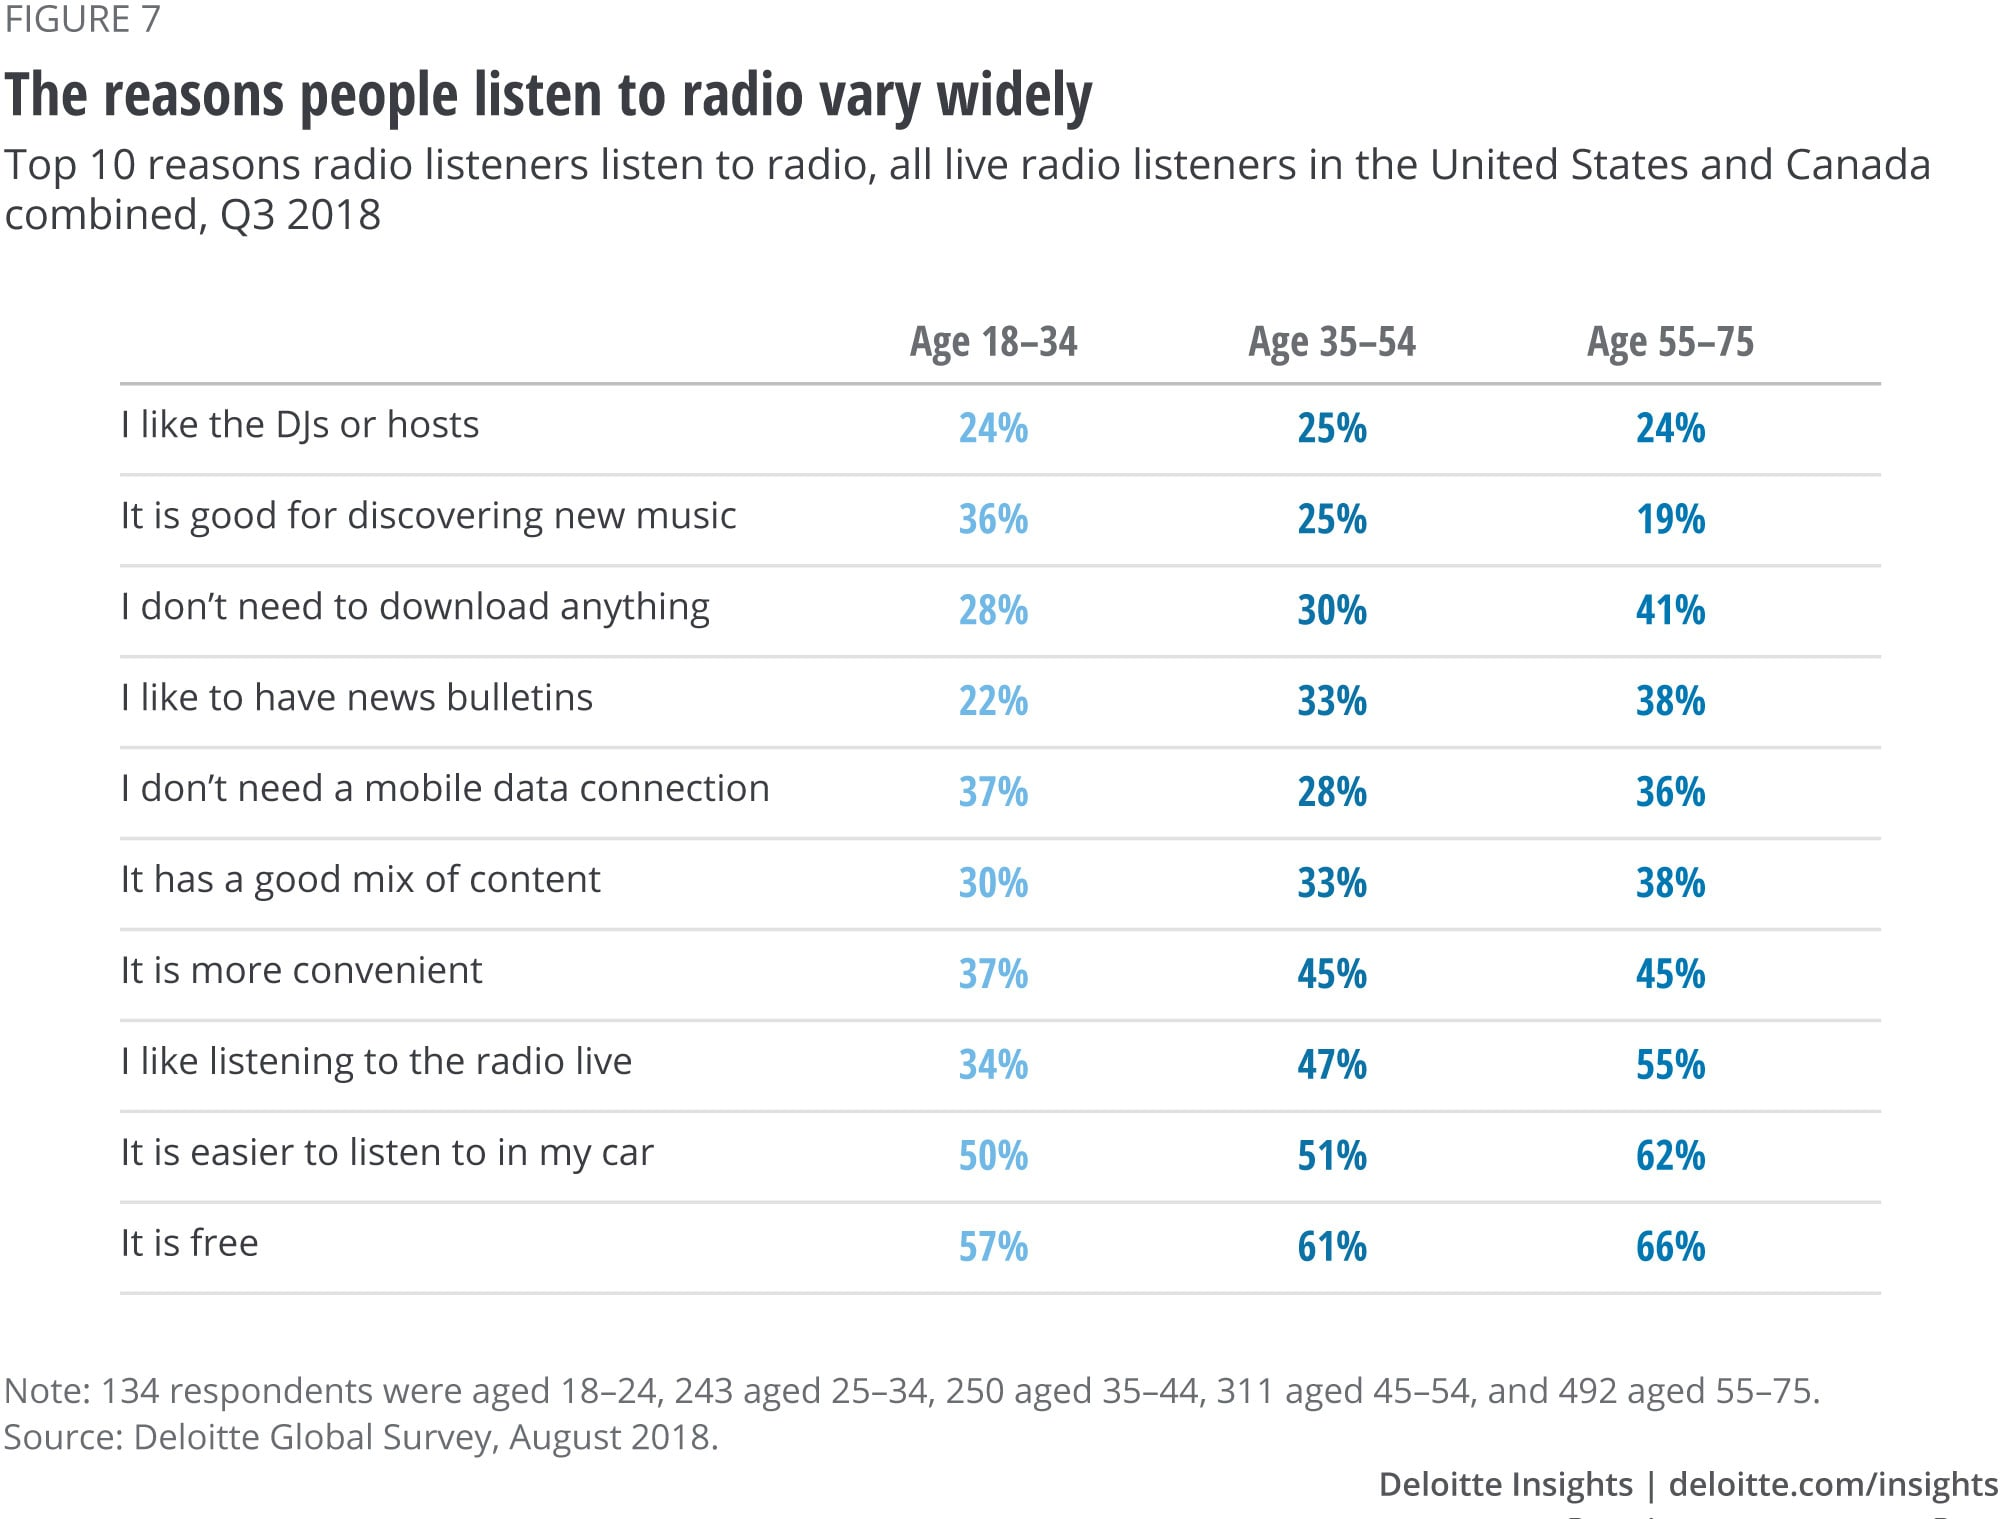 The reasons people listen to radio vary widely